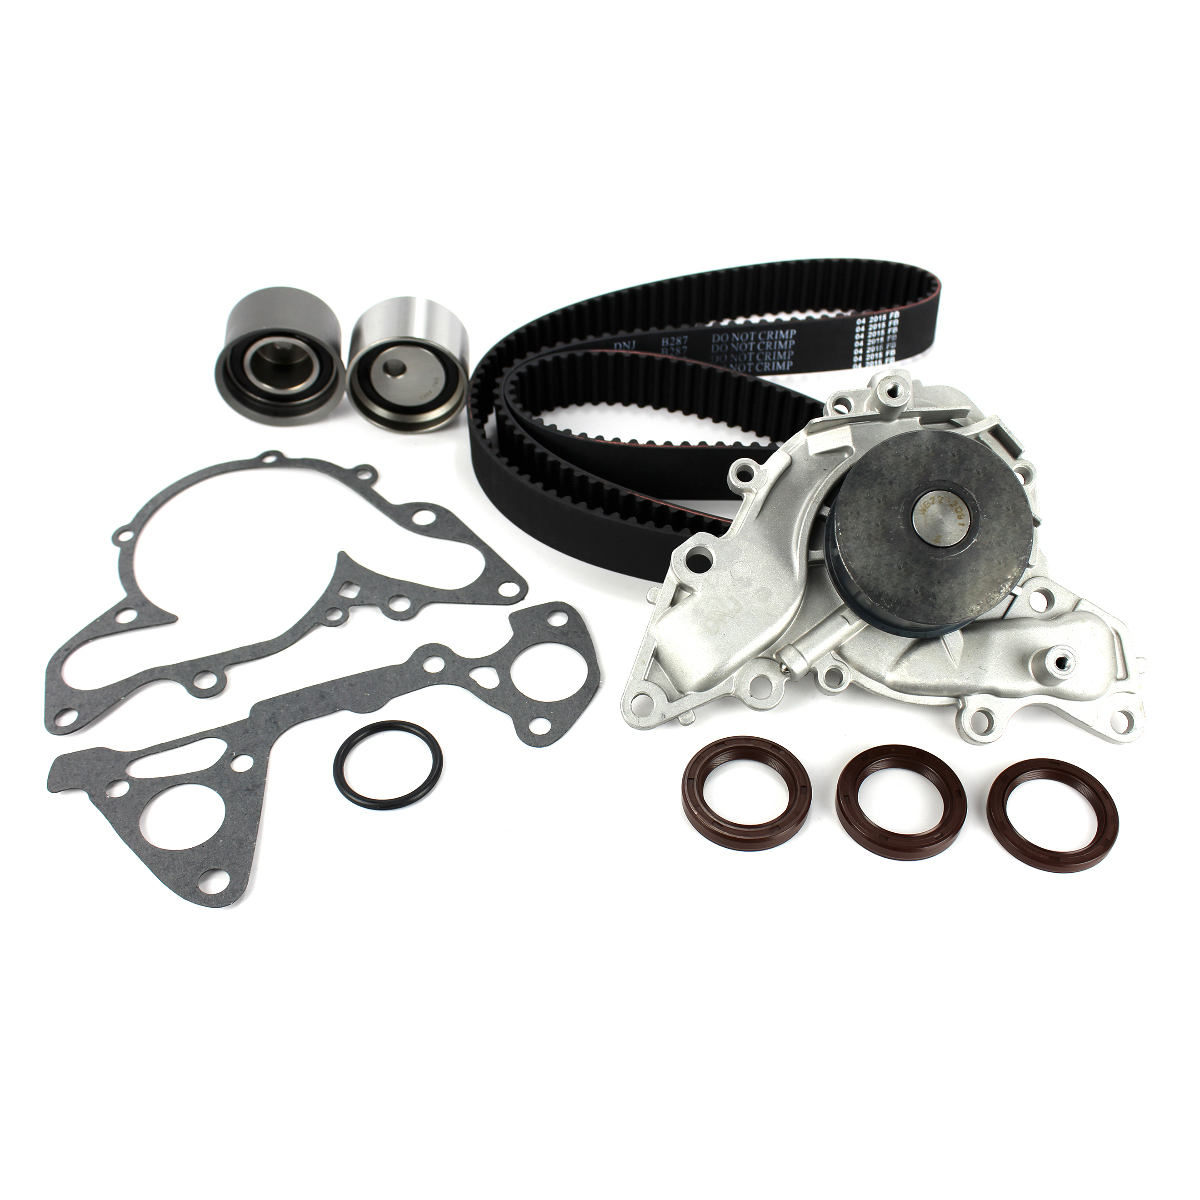 Dnj Tbk133wp Timing Belt Kit With Water Pump Ebay 2000 Toyota Spyder